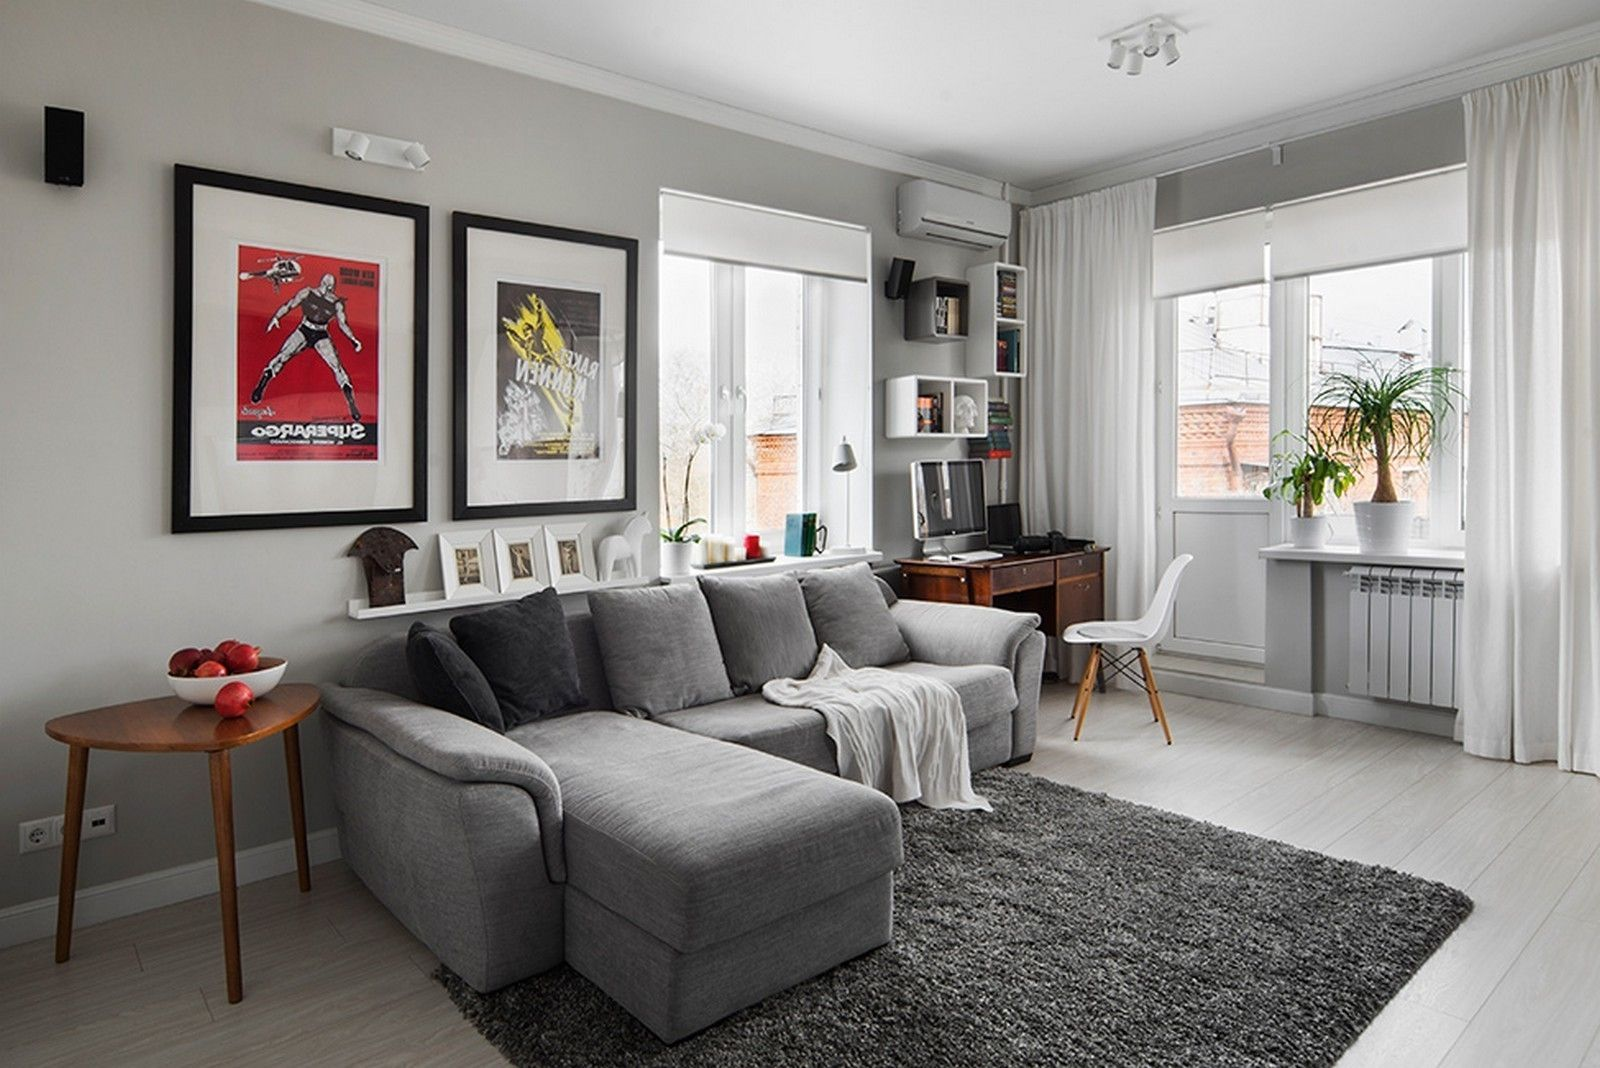 Interior Paint Interior Paint Colors For House Painting Tips Color Ideas Living Room Grey Living Room Colors Paint Colors For Living Room #nice #paint #colors #for #living #room